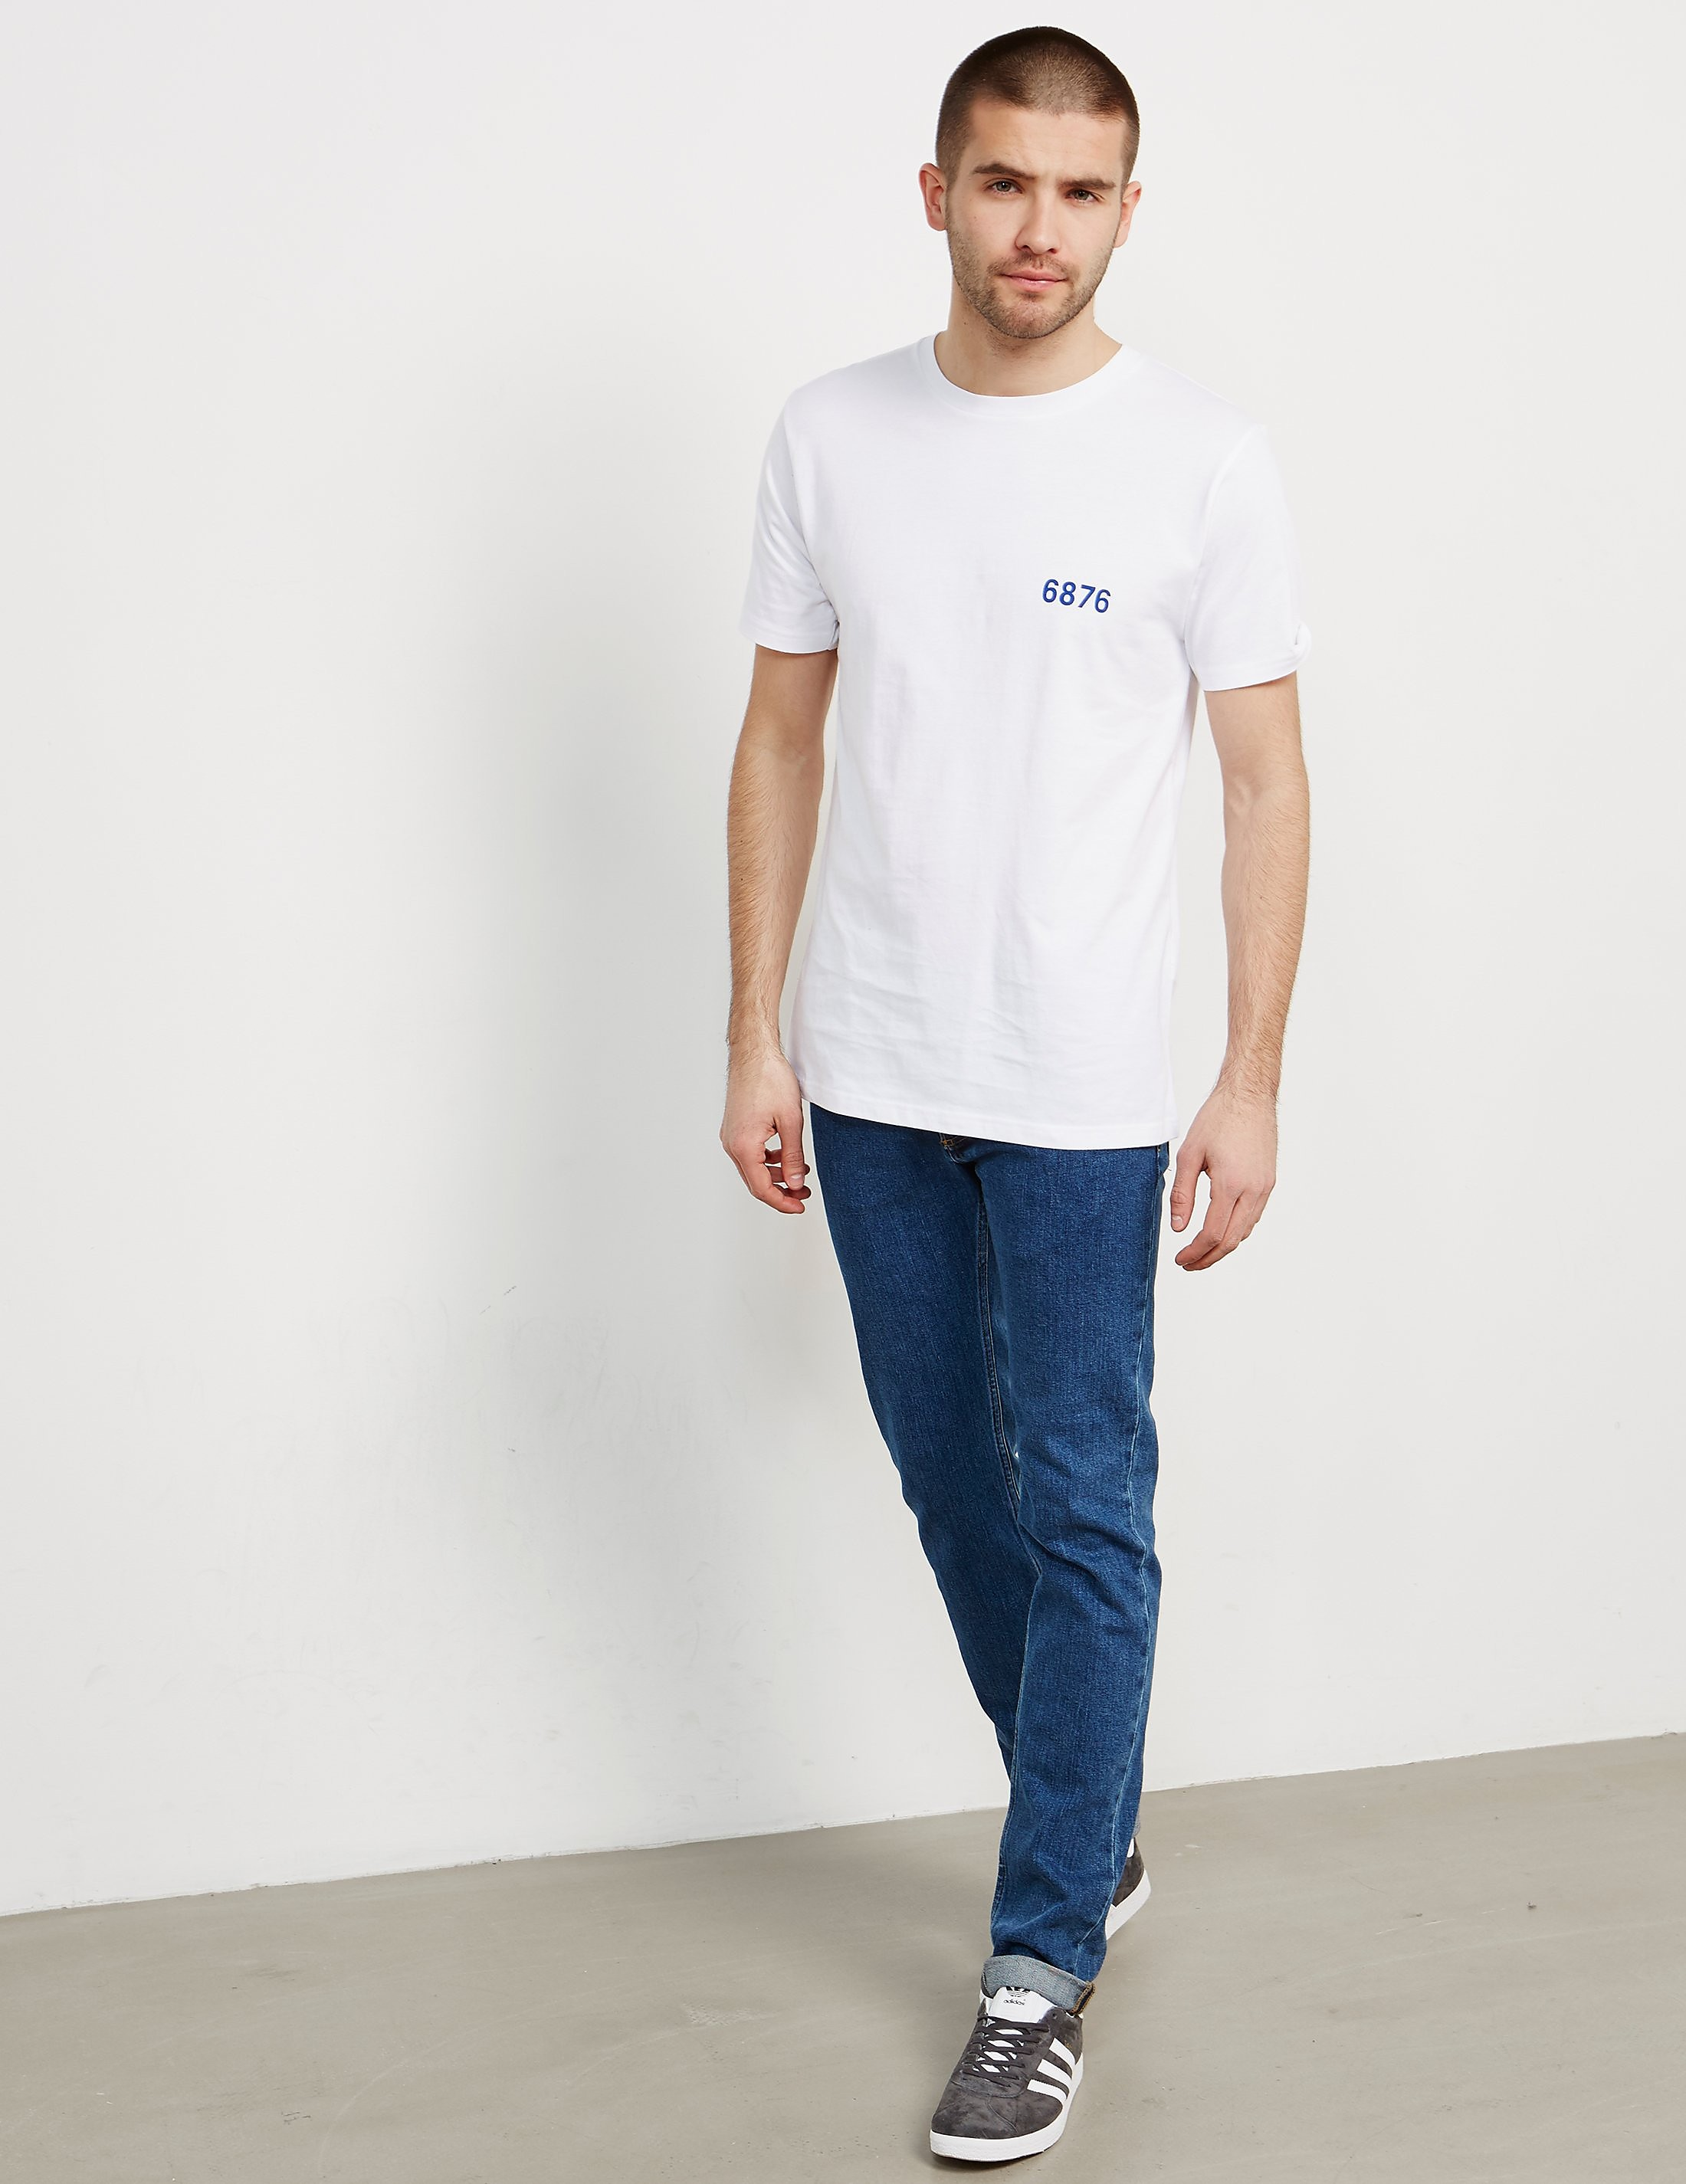 6876 Tour Short Sleeve T-Shirt - Online Exclusive